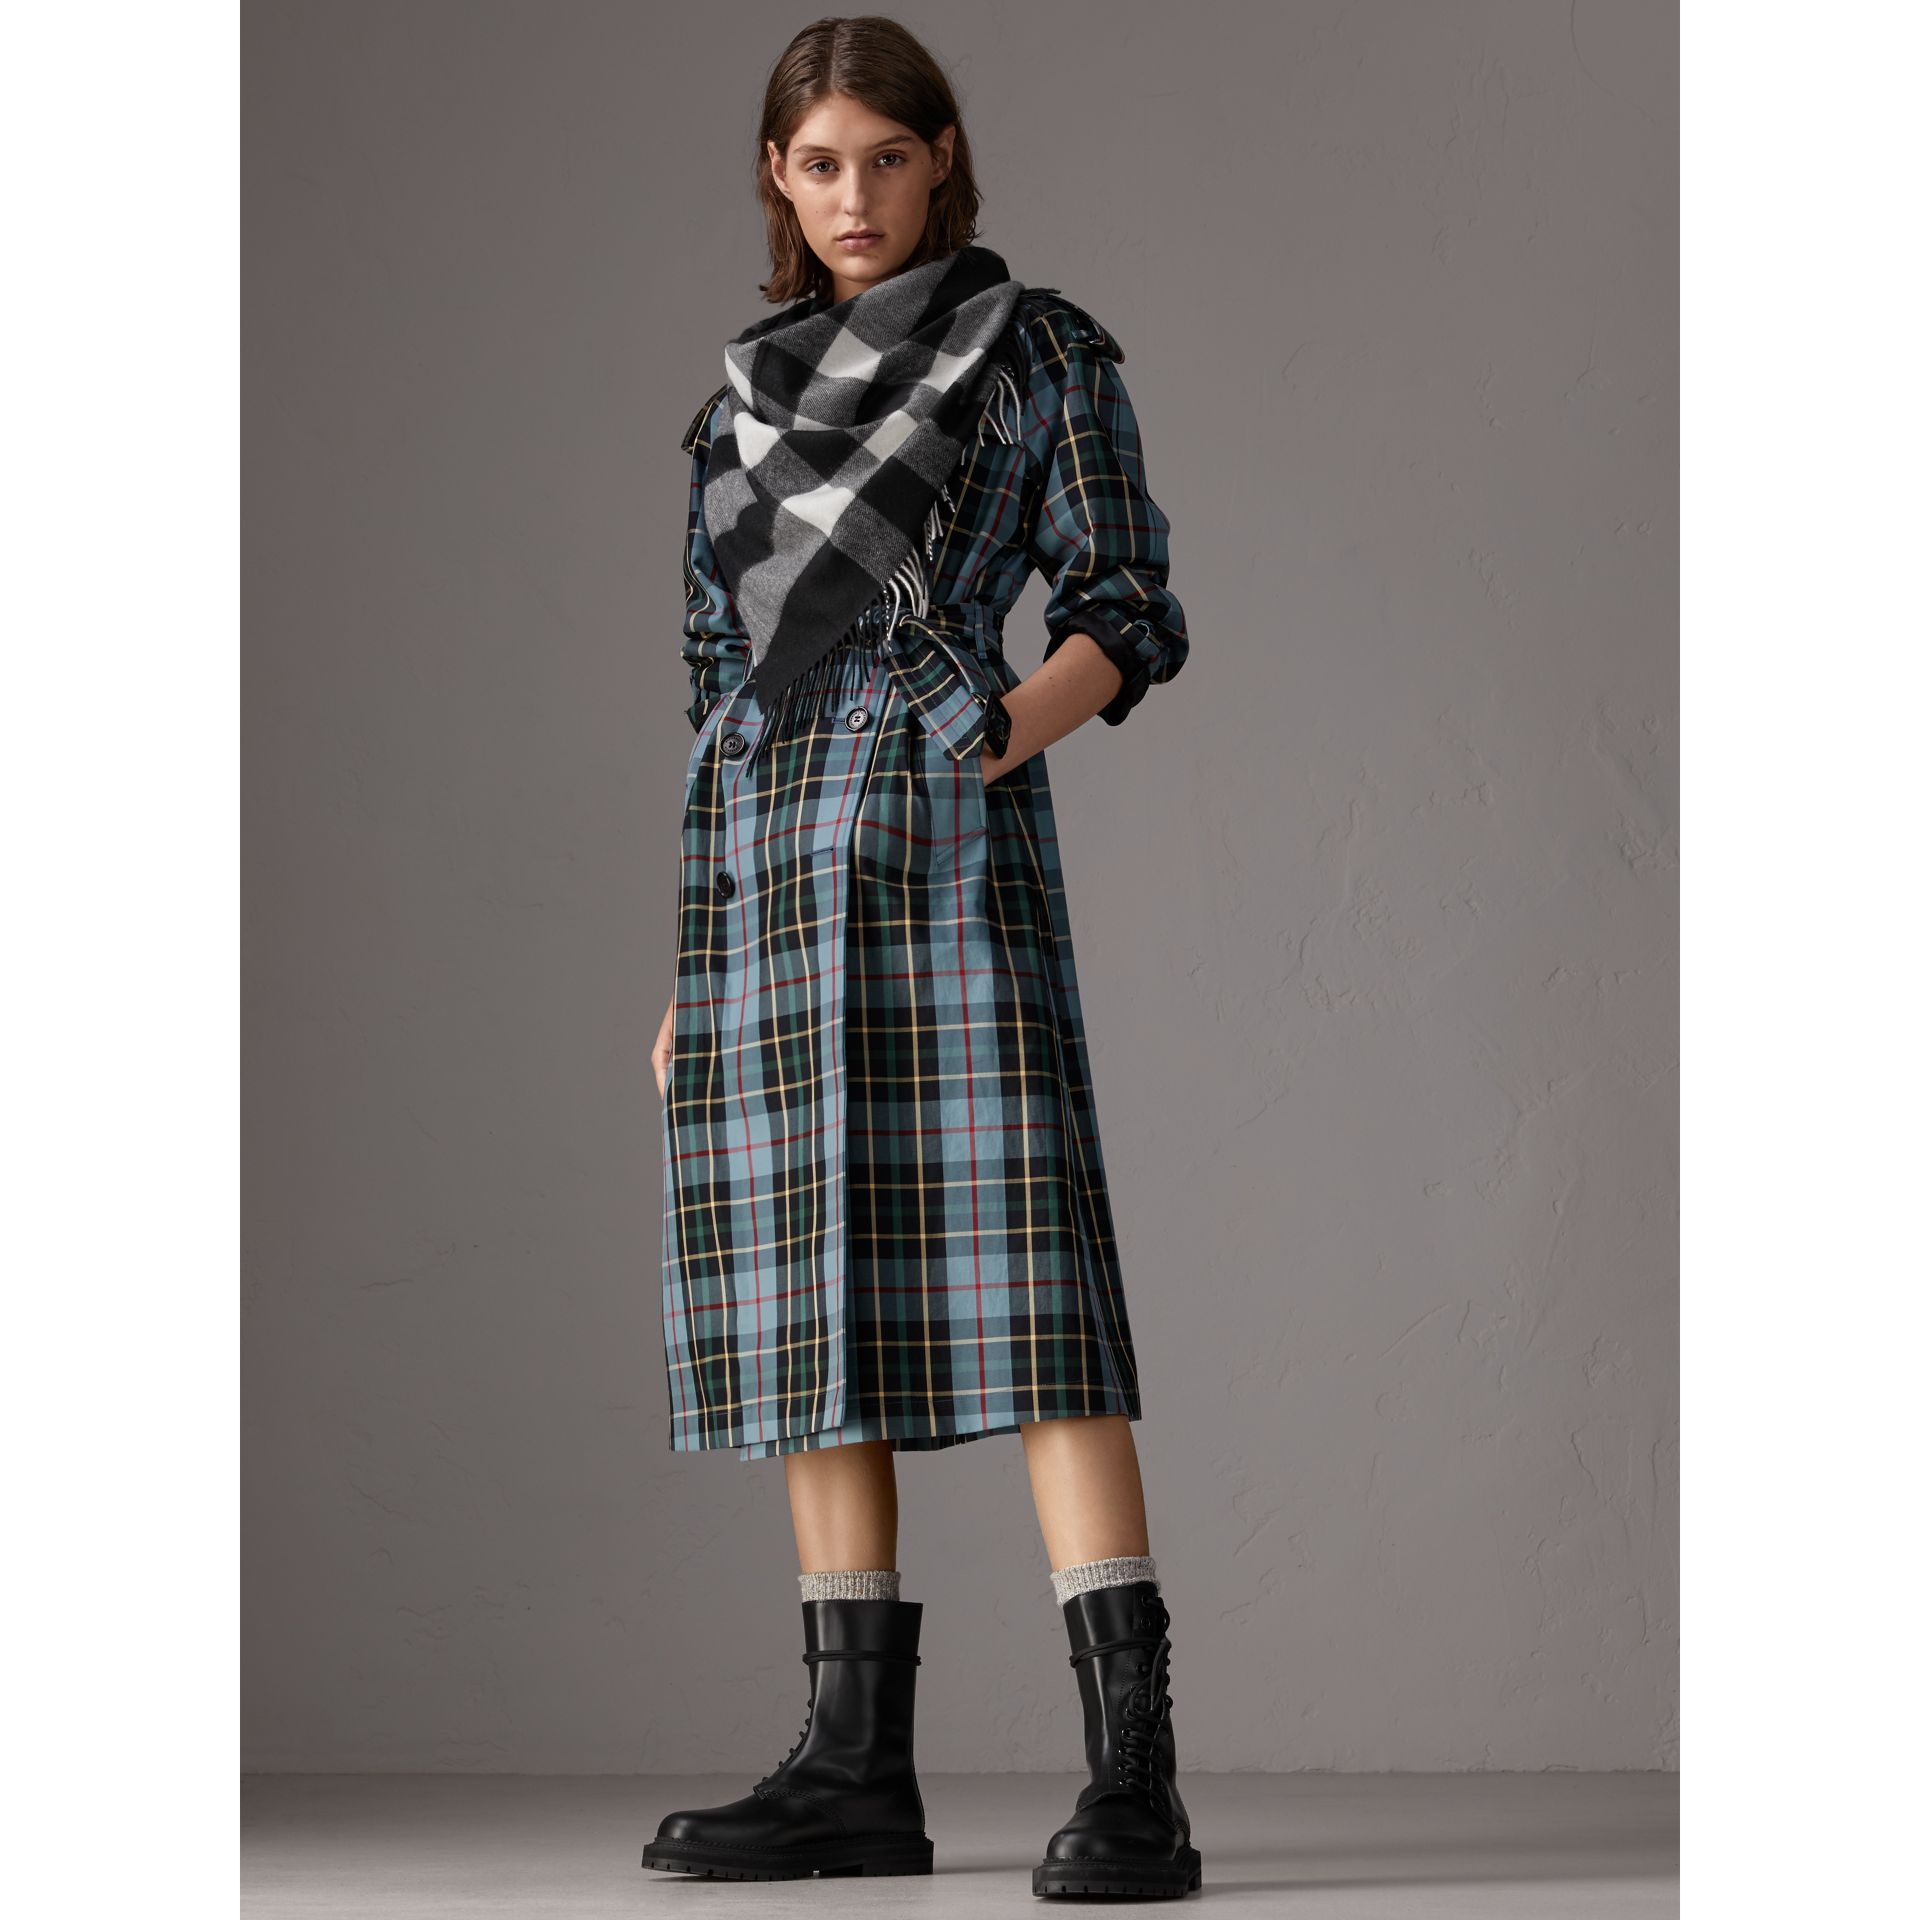 The Burberry Bandana in Check Cashmere in Black | Burberry - gallery image 2